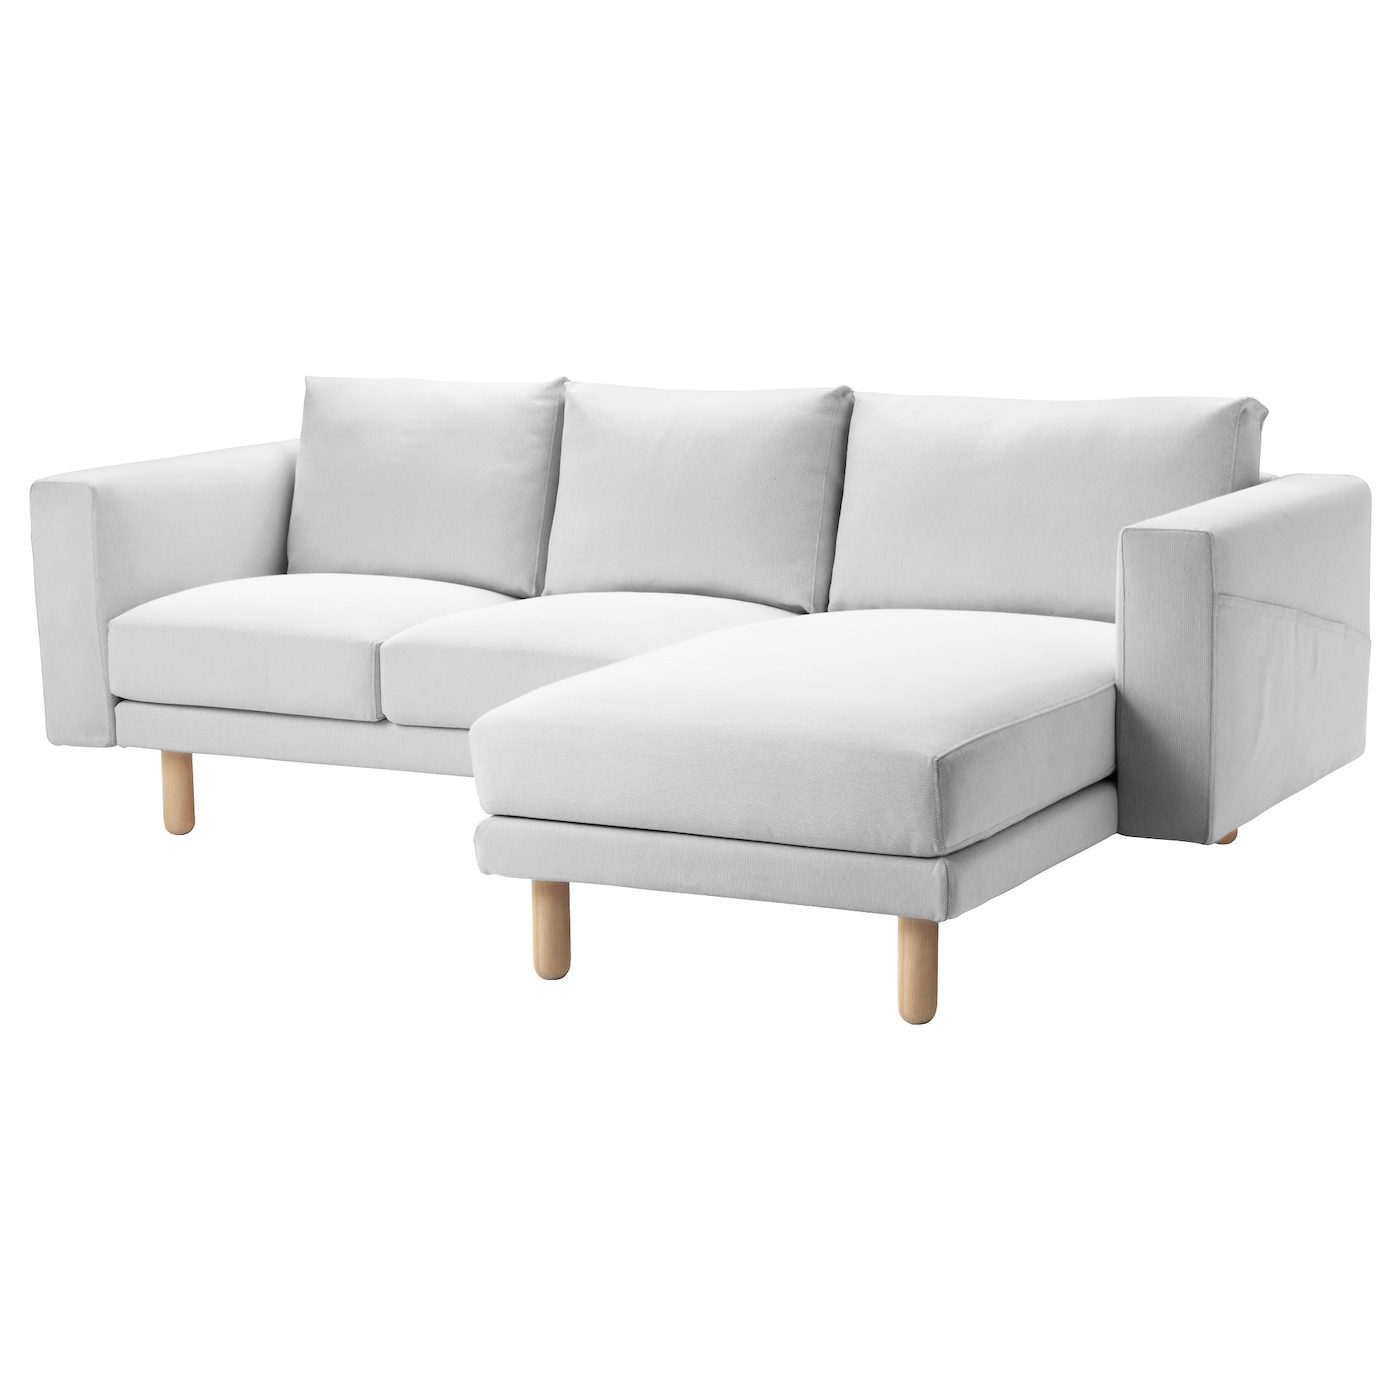 Norsborg two seat sofa with chaise longue finnsta white for 5 seater sofa with chaise